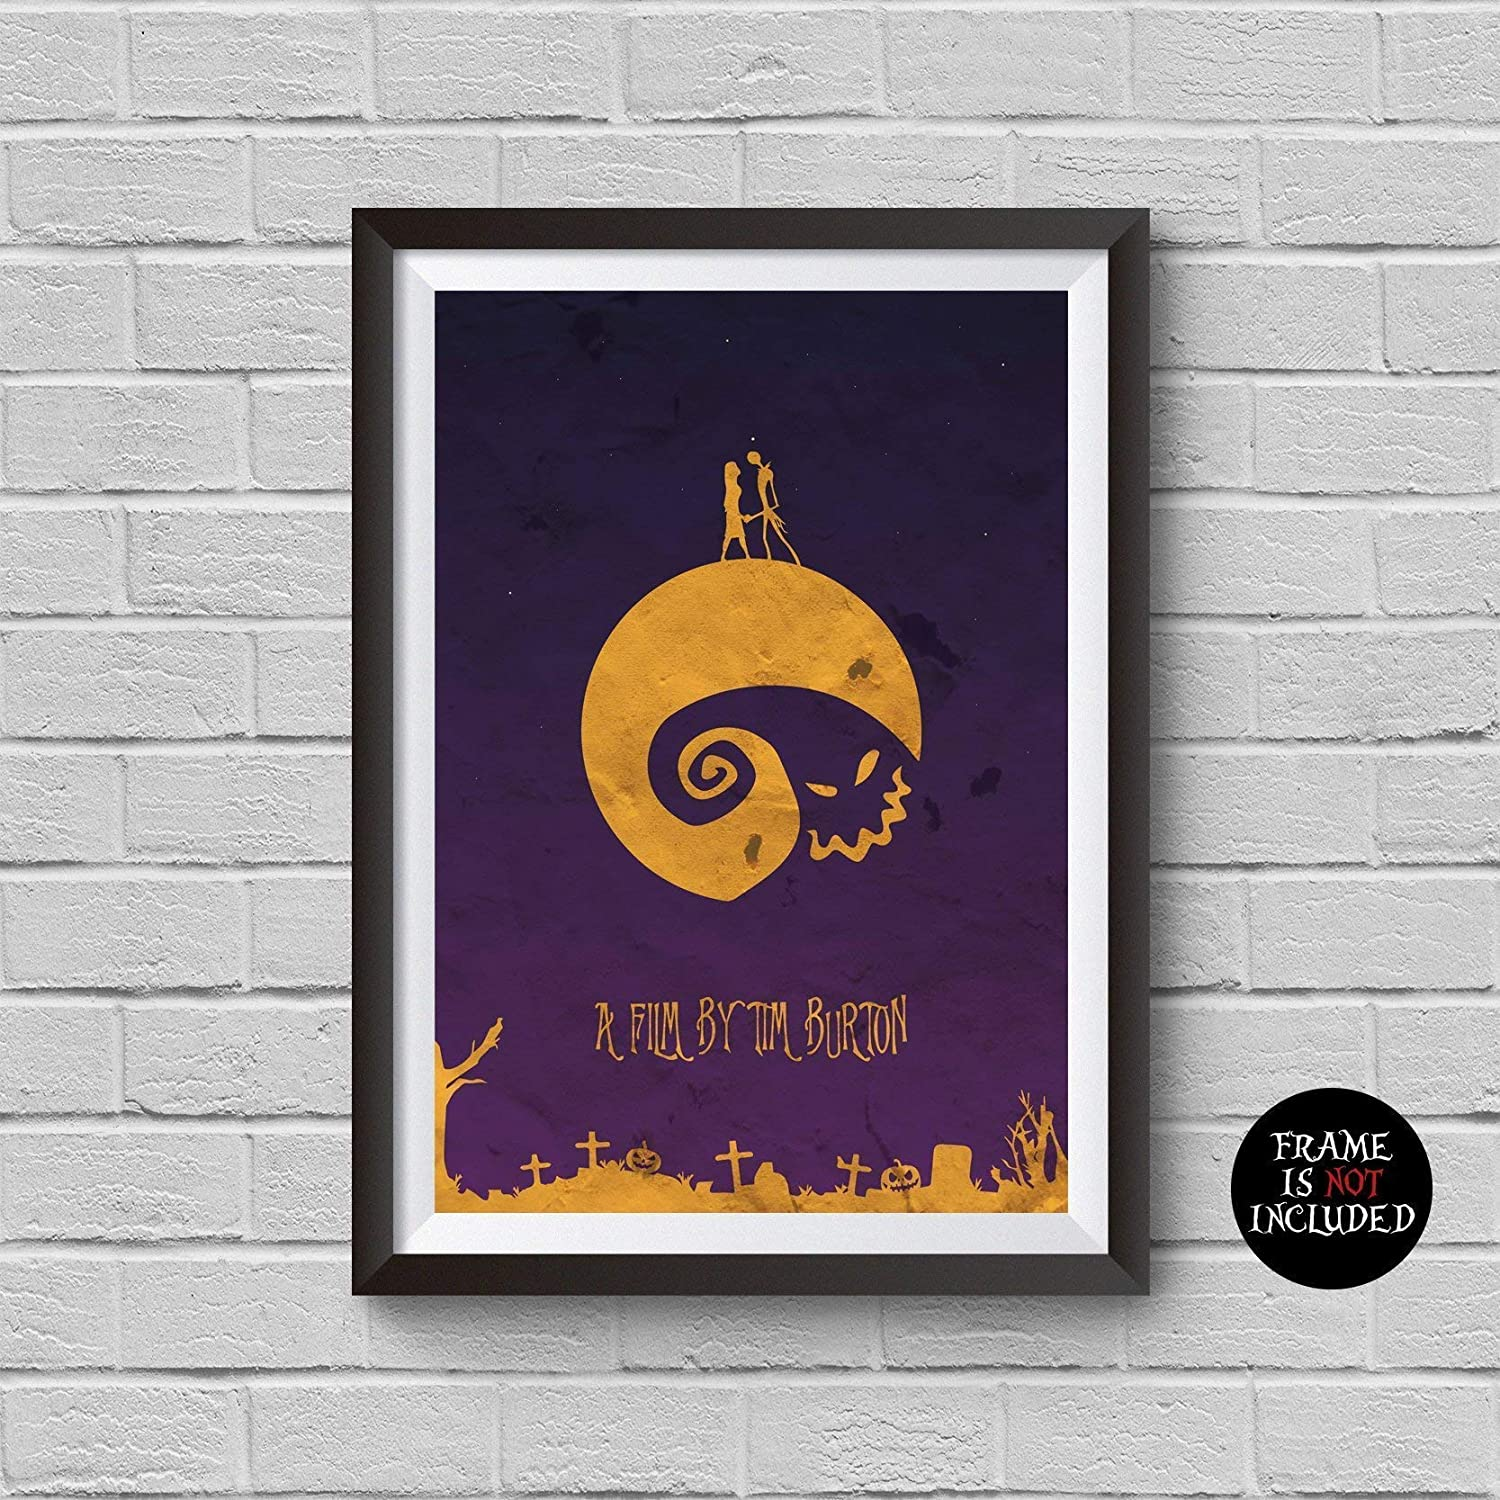 A2 The Nightmare Before Christmas Vintage Movie Poster A1 A4 A3